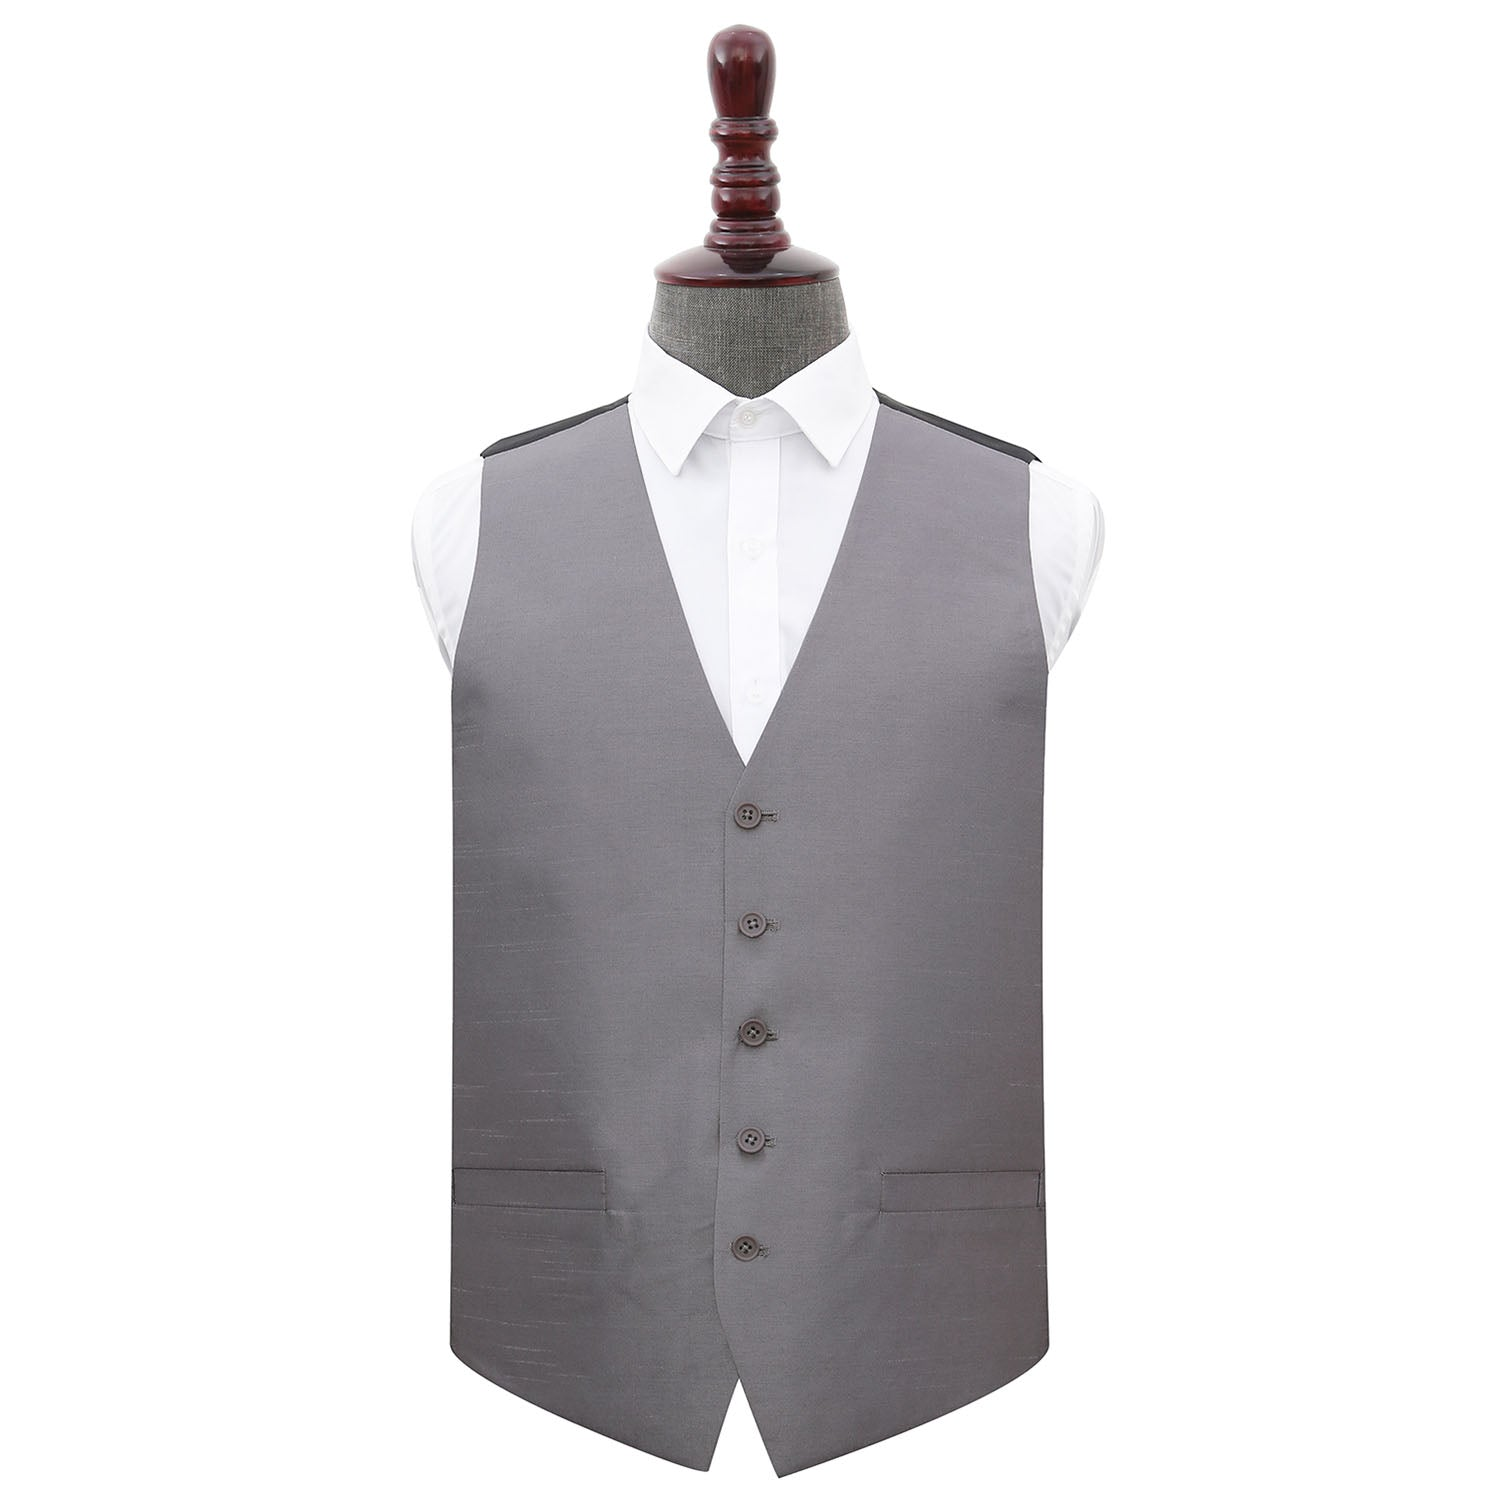 Plain Shantung Wedding Waistcoat - Steel Grey, 48', Clothing by Low Cost Gifts